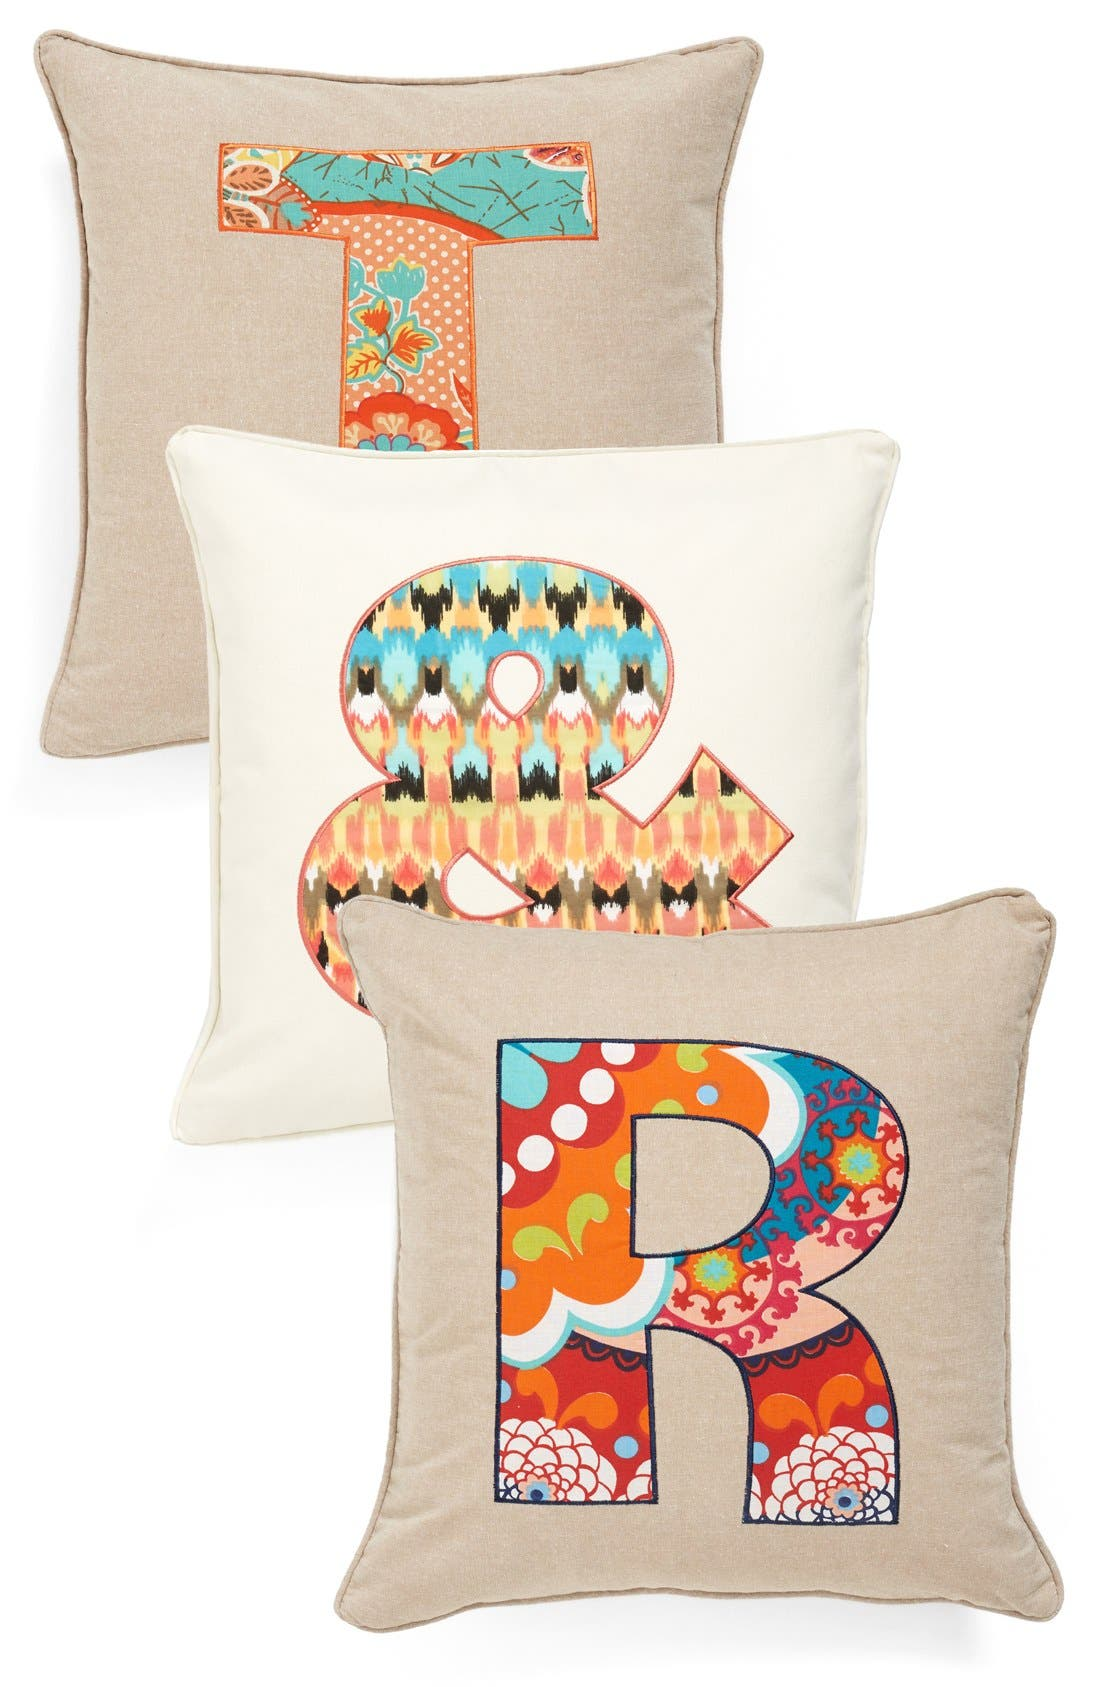 Alternate Image 1 Selected - Levtex 'Letter' Accent Pillow